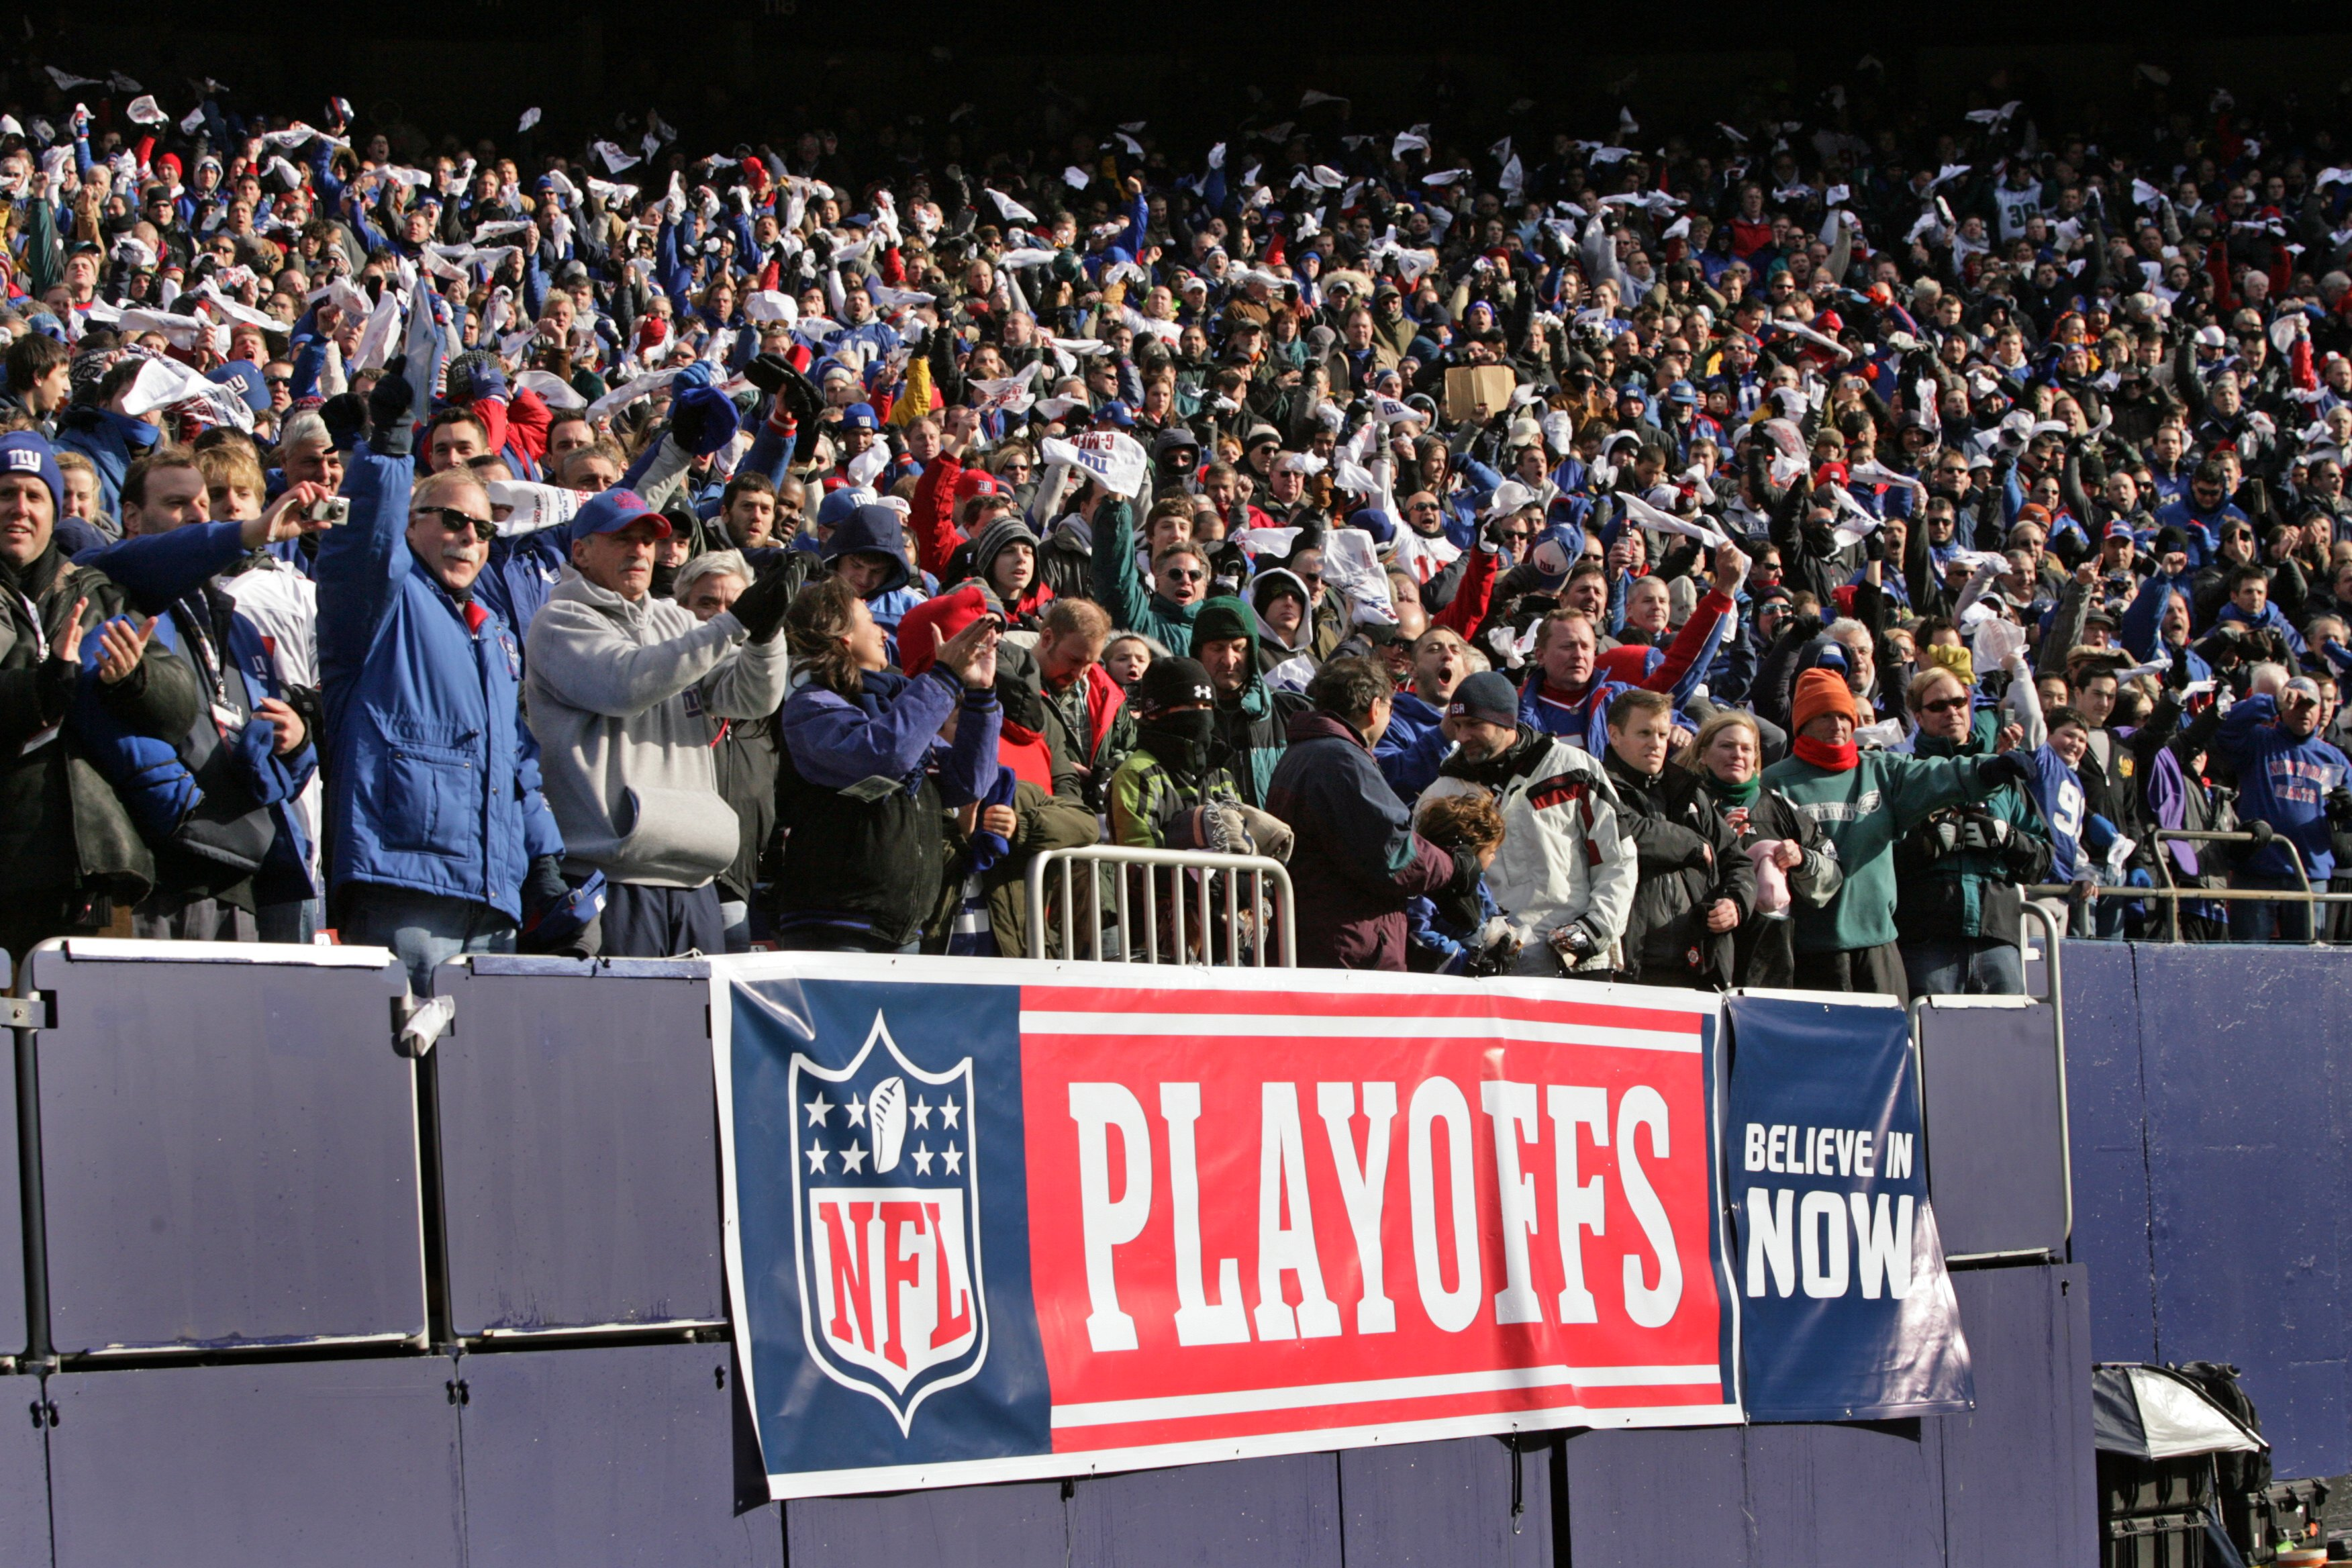 Fans in the crowd cheer during an NFL Playoff game